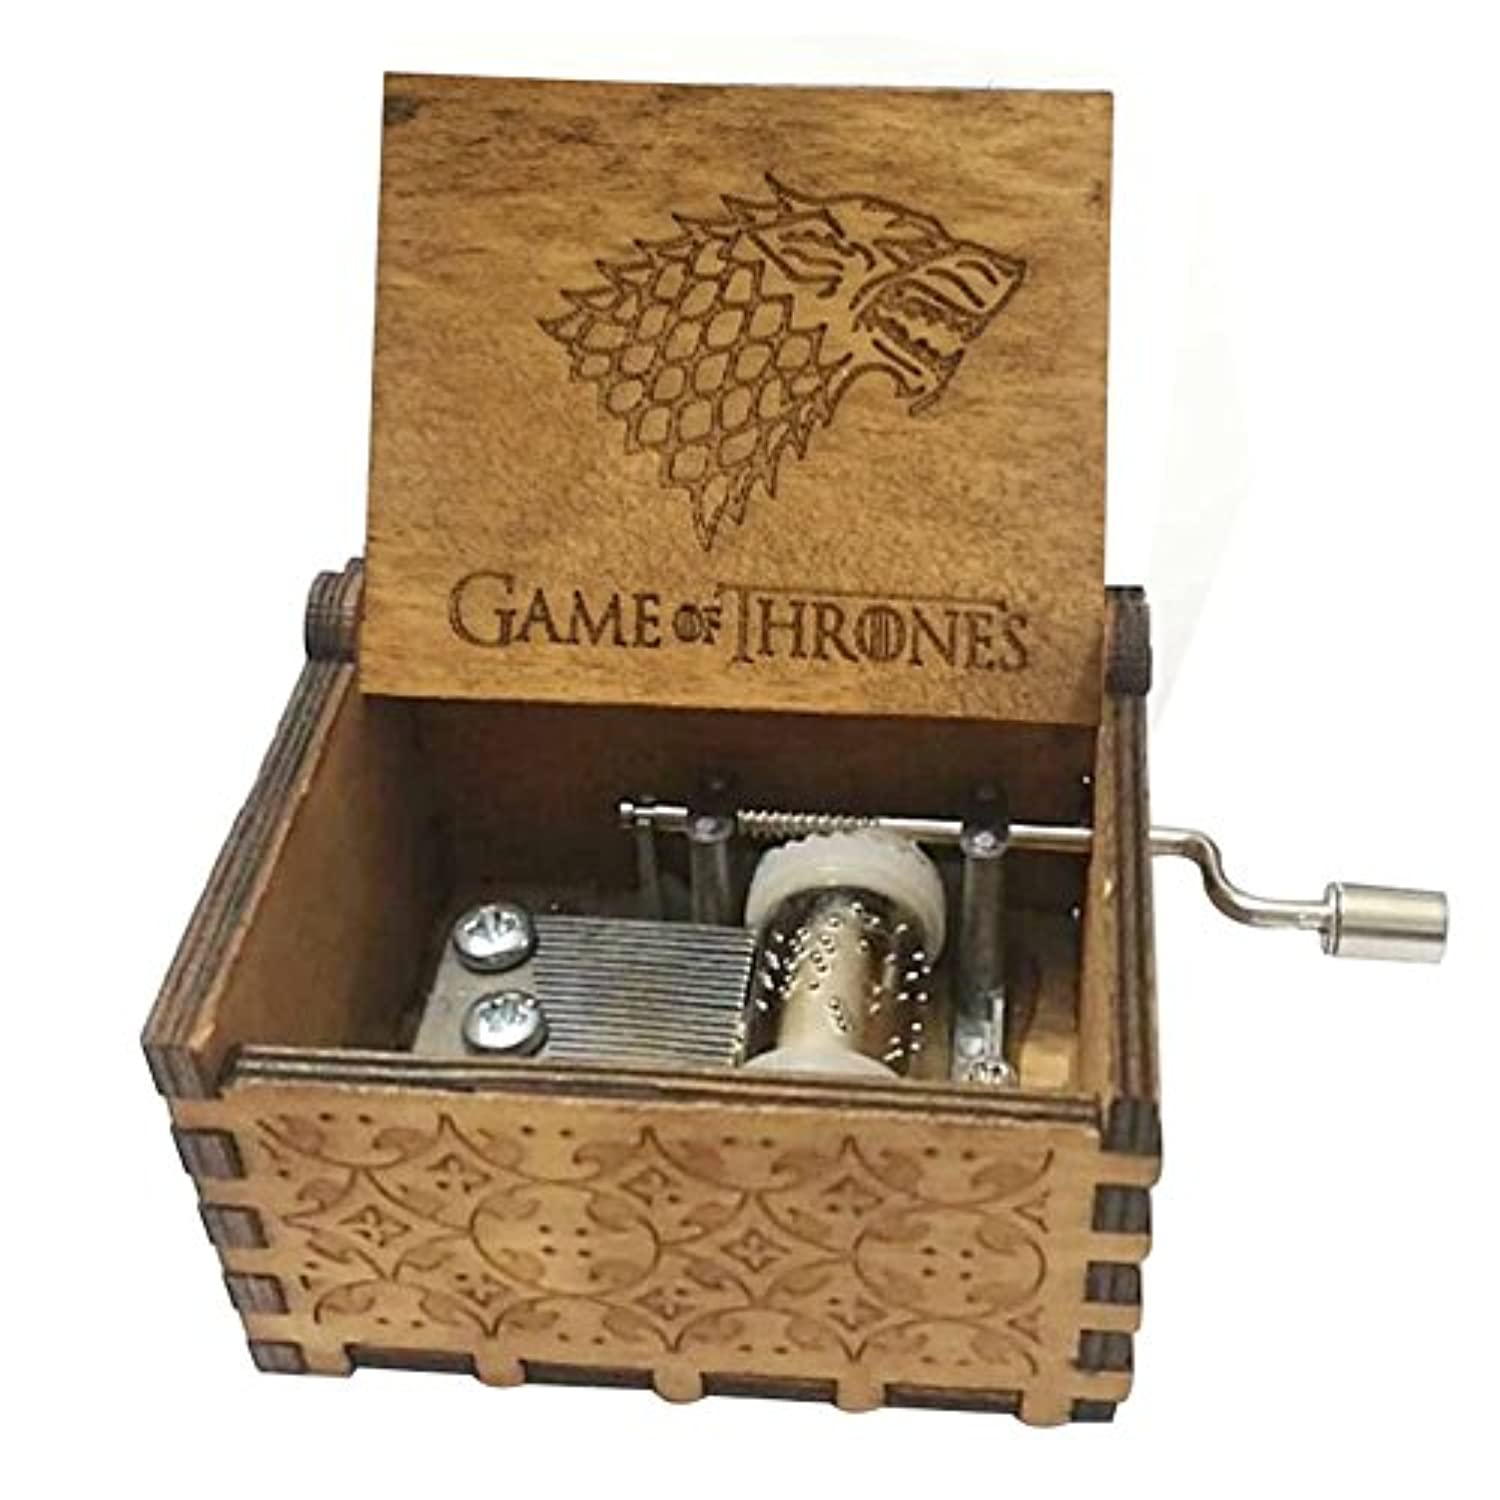 (Game of Thrones B) - FORUSKY Hand Cranking Carved Game of Thrones Wood Music Box for Home Decoration Crafts,Toys,Gift